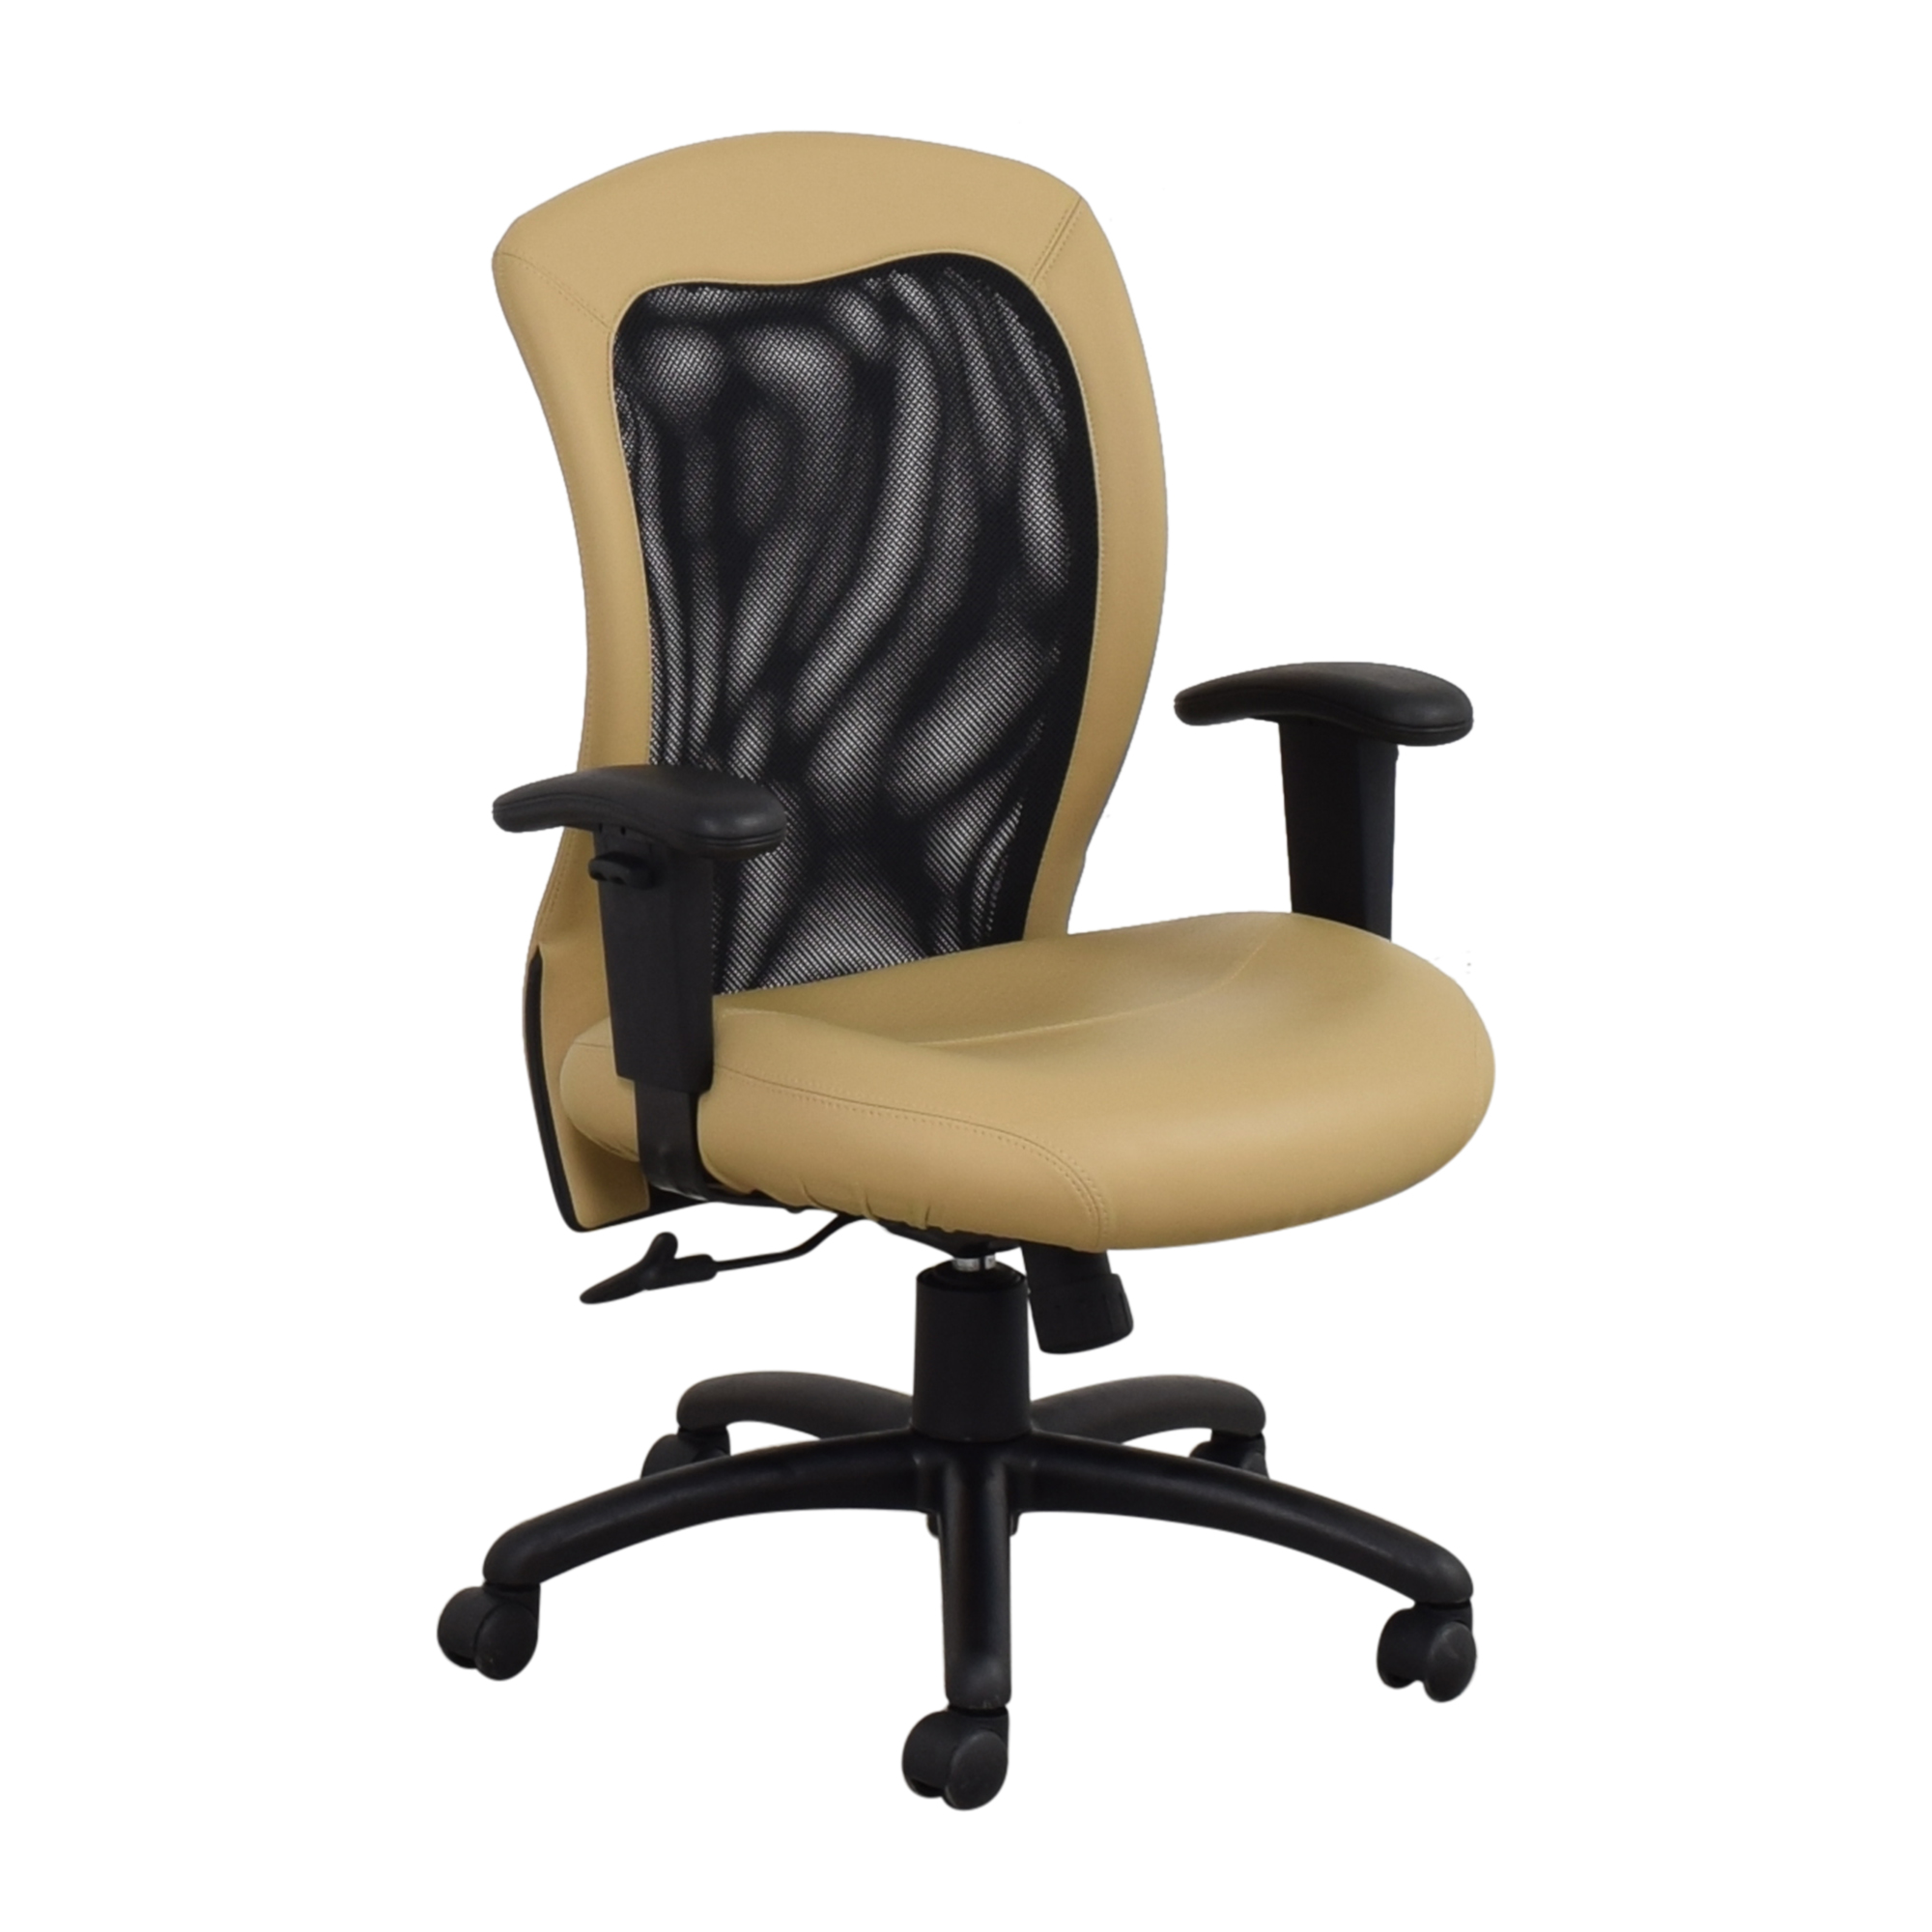 Offices to Go Offices to Go Mesh Back Tilter Office Chair dimensions